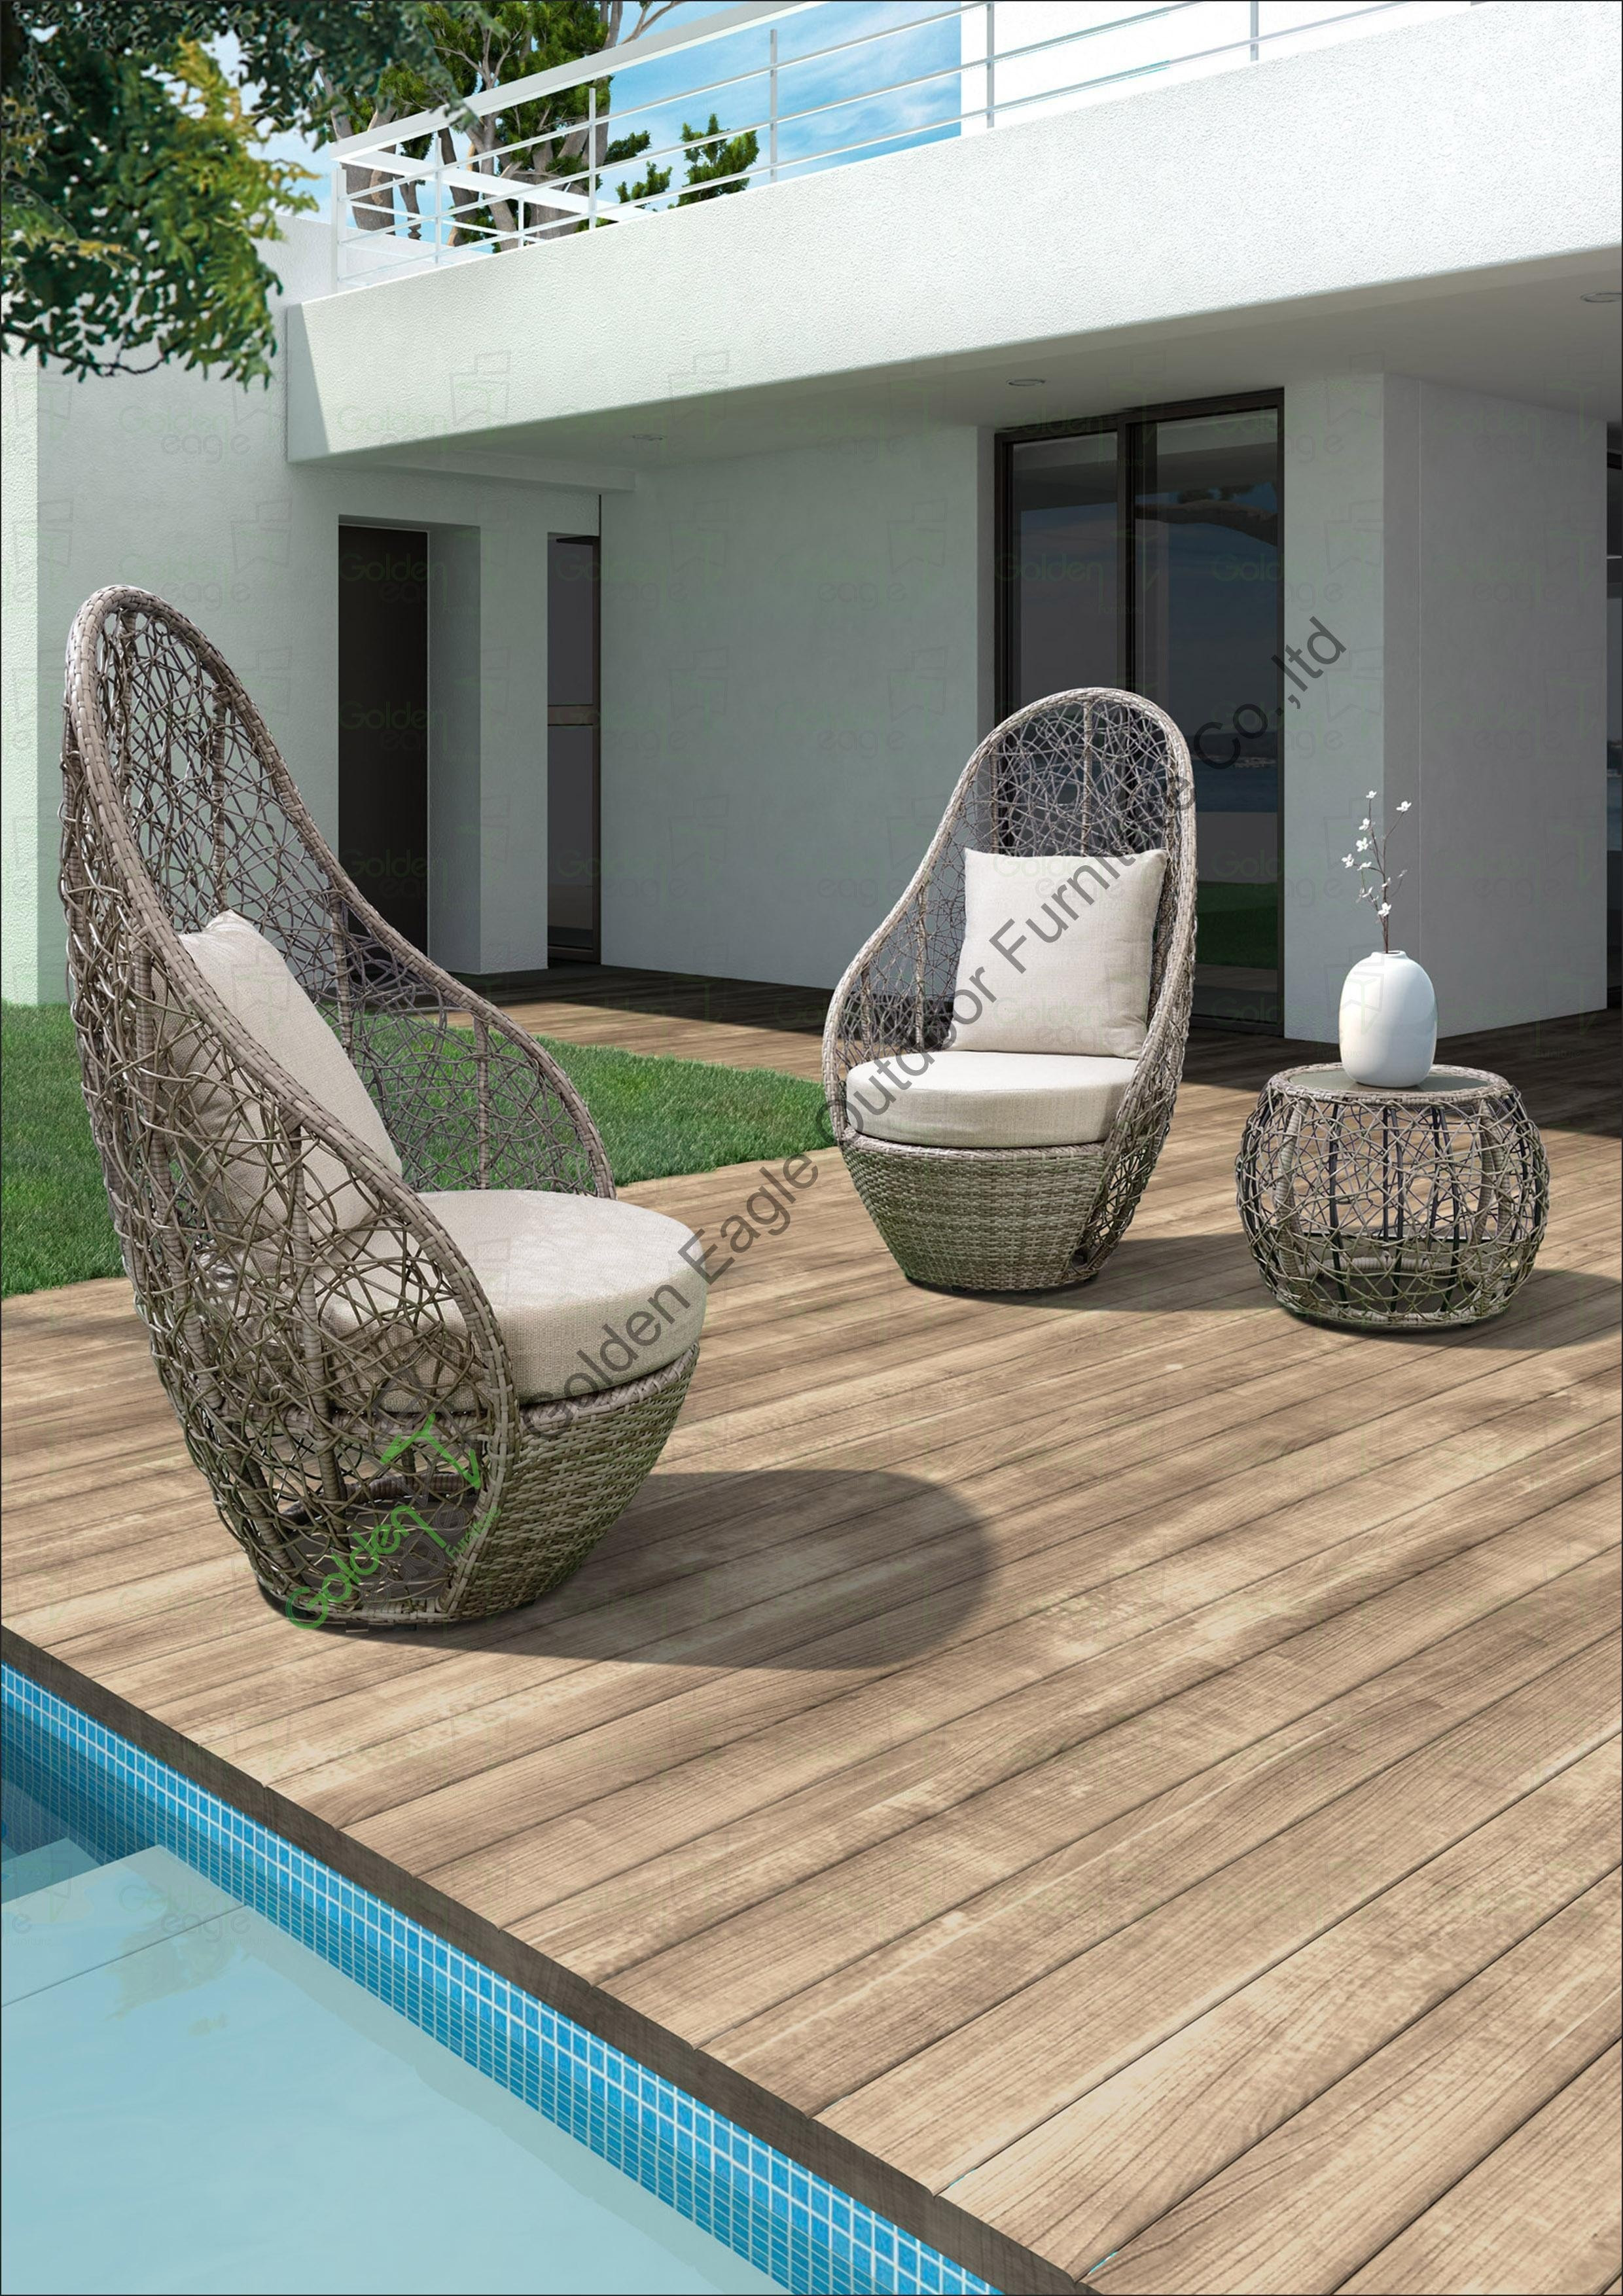 wholesale hardwood flooring of 26 unique grey hardwood floors photos flooring design ideas intended for grey hardwood floors best of outdoor furniture for patio beautiful furniture patio floor ideas pictures of